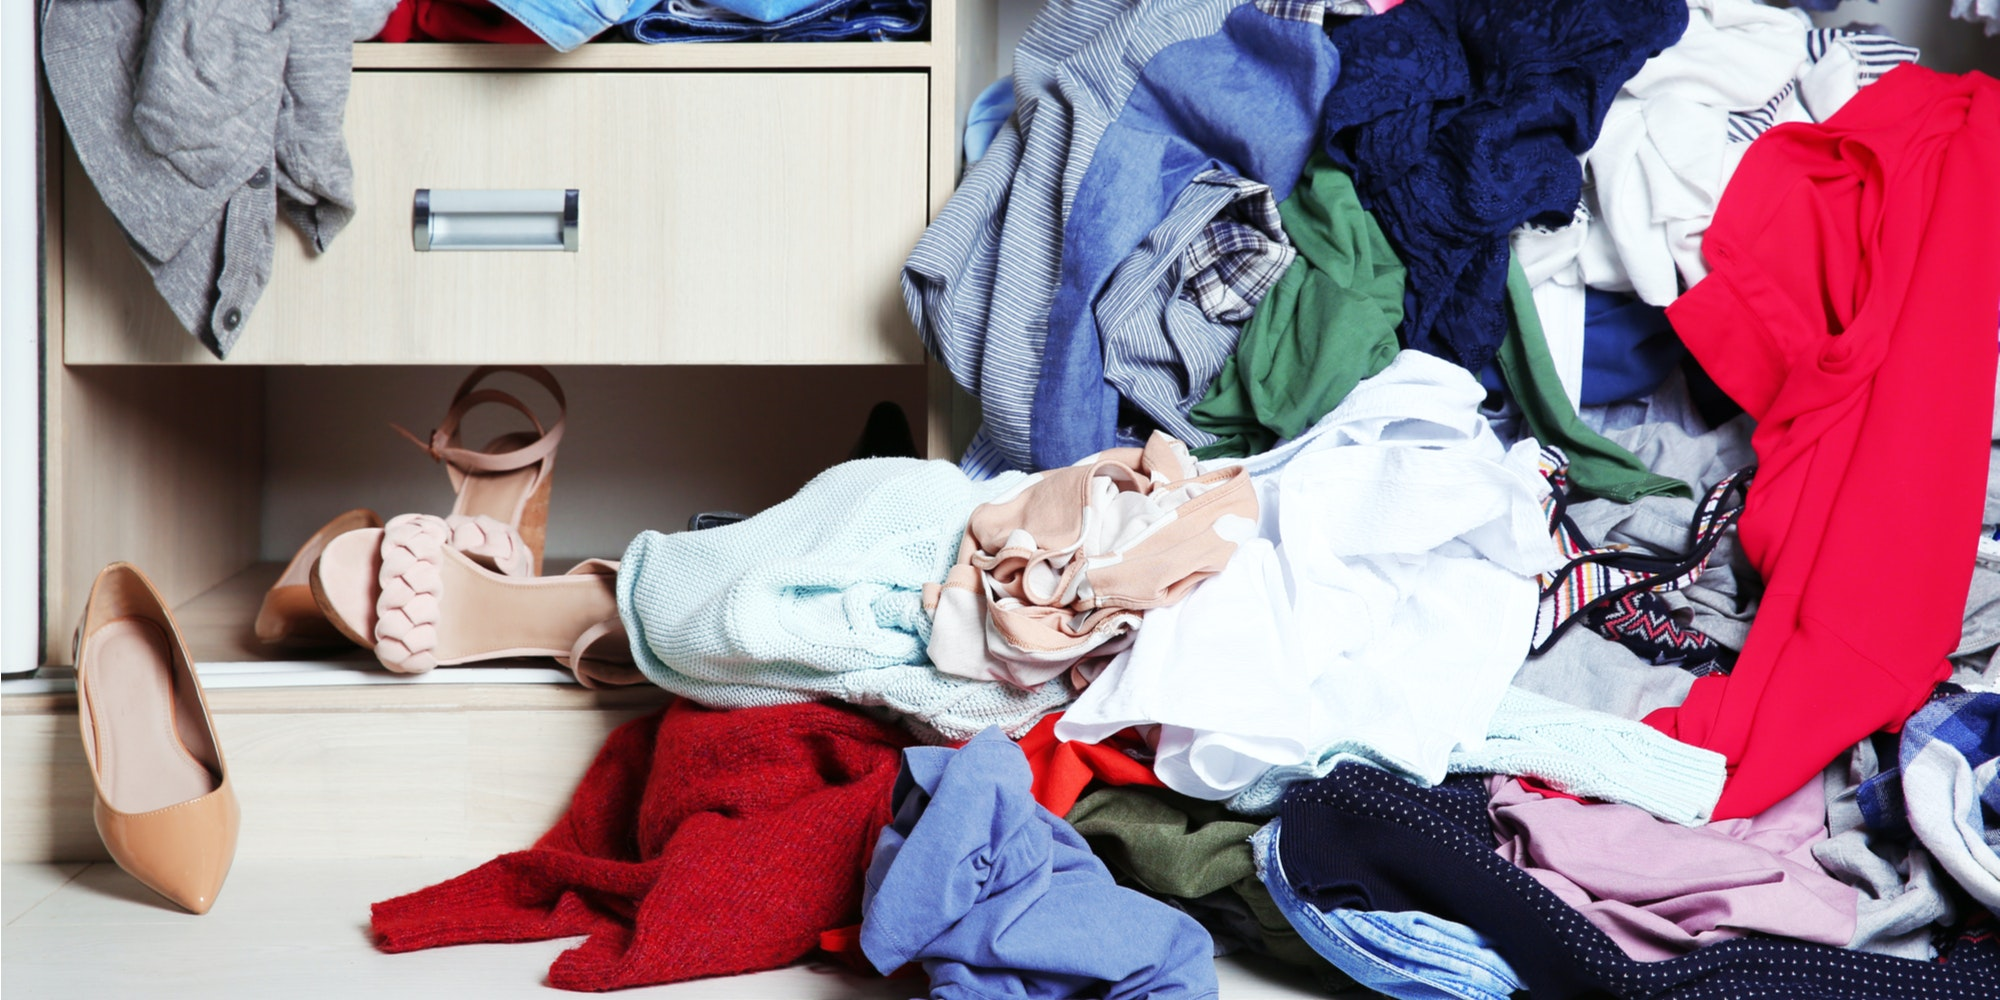 Pile of clothes and shows on floor of closet